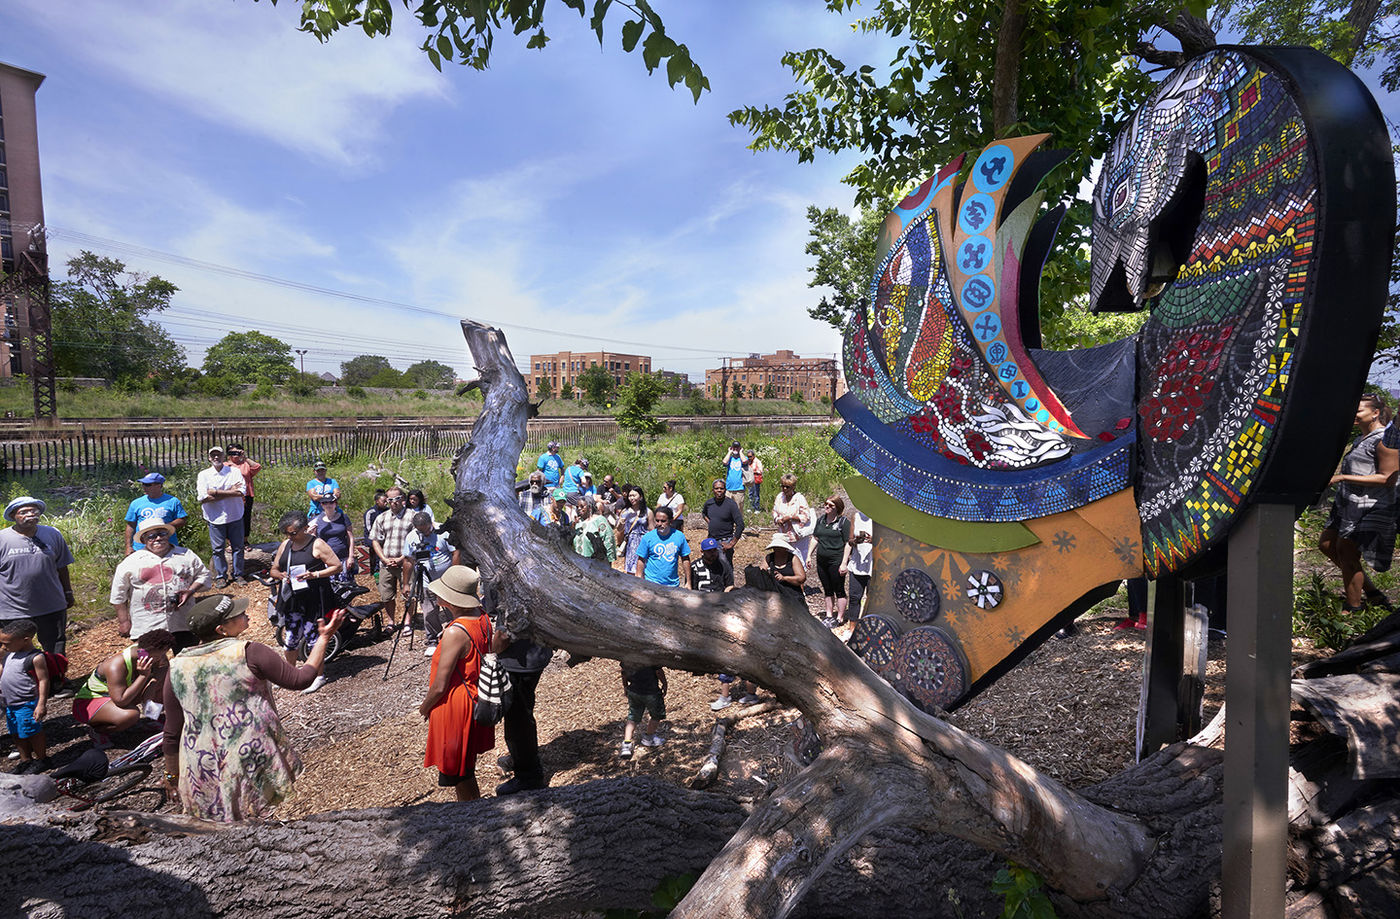 Gathering Spaces, Burnham Wildlife Corridor, Chicago, Festivals, Summer, Spring, Latino art, African-American art, monarch butterfly, sankofa, bronzeville, pilsen, chinatown, scholars rock, Sankofa for the Earth